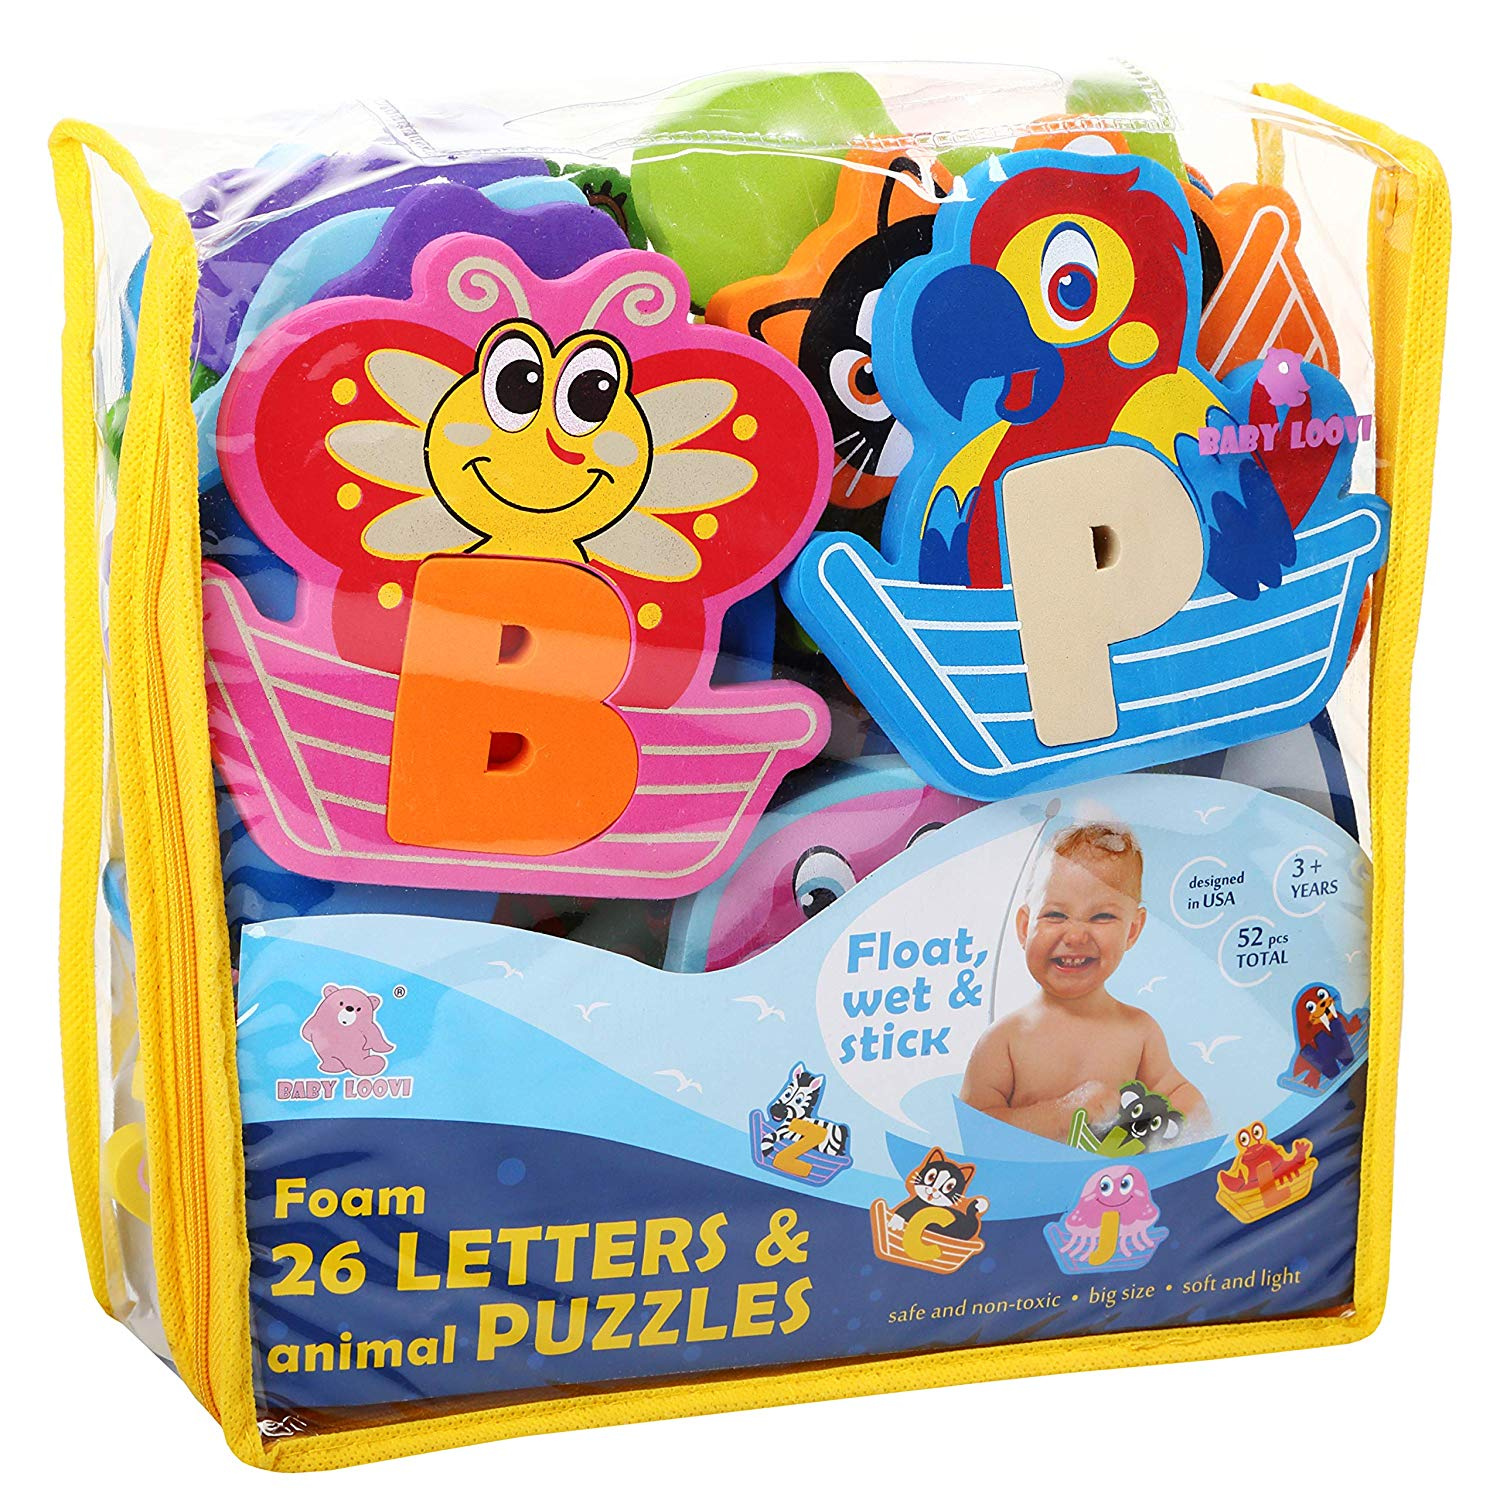 Foam Letters Bath Toys - Fun and Educational Floating Toys with FREE Bath  Organiser Storage Bag - Early Learning Colours Letters Shapes and Animals -